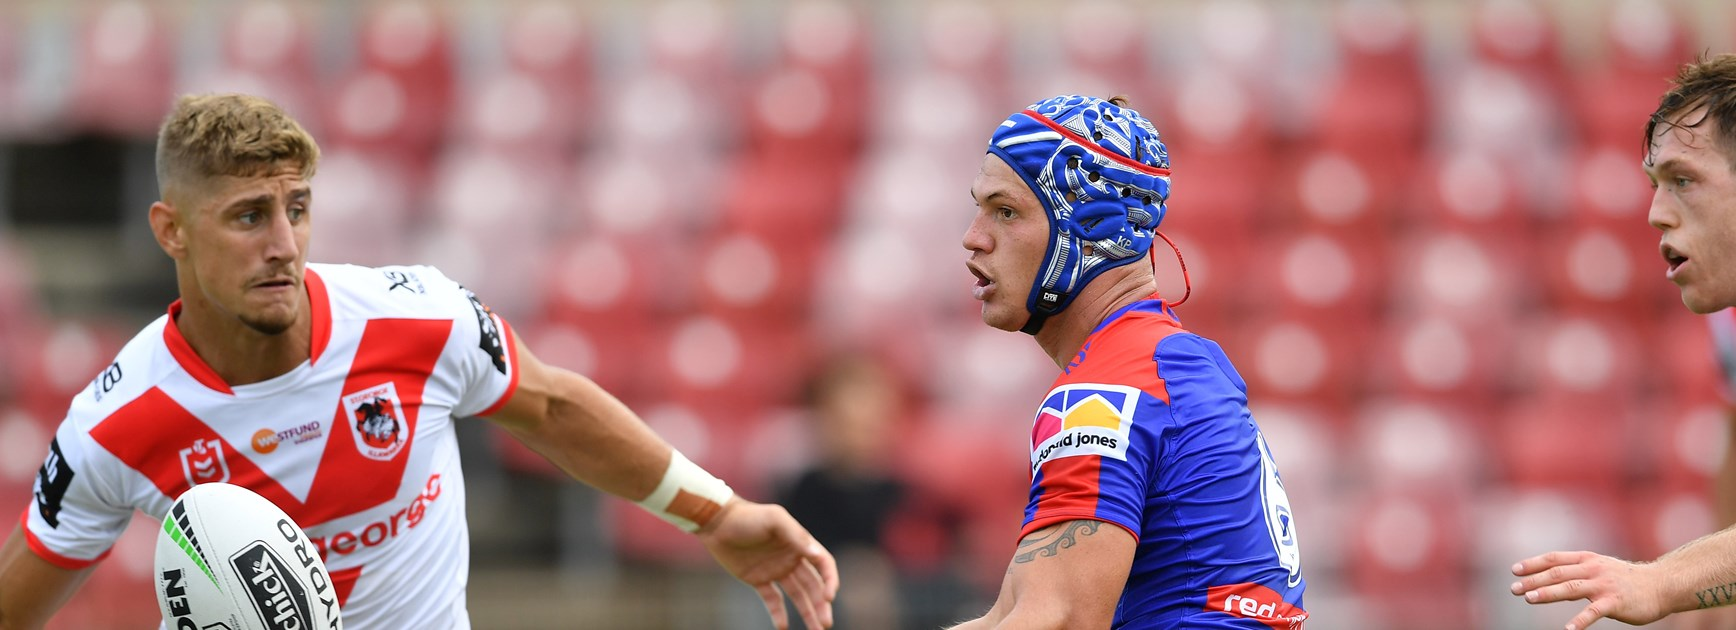 Kalyn Ponga in action against the Dragons.